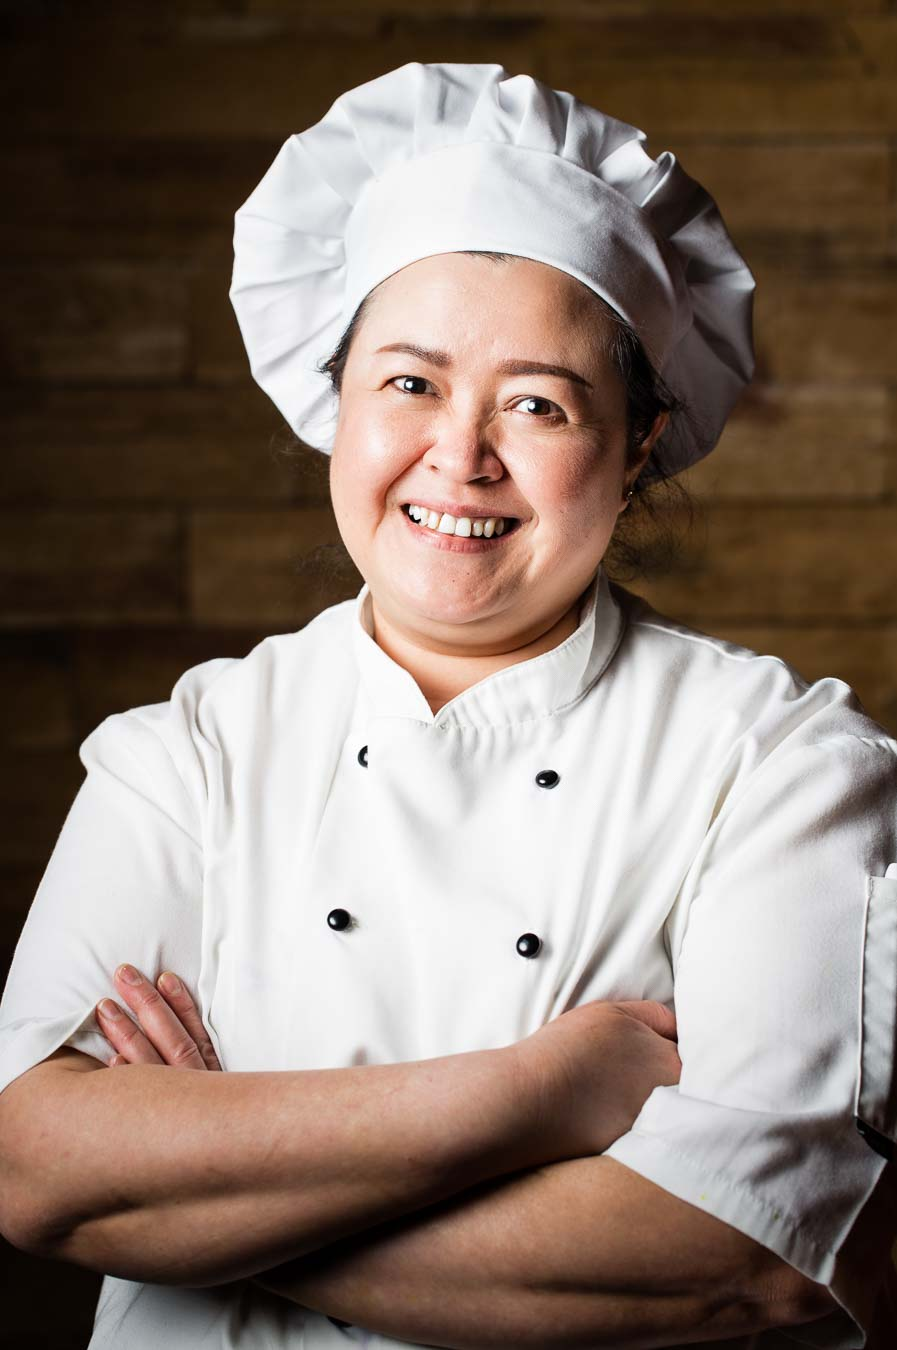 Thai female chef portrait wearing whites and a chefs hat with a wooden background